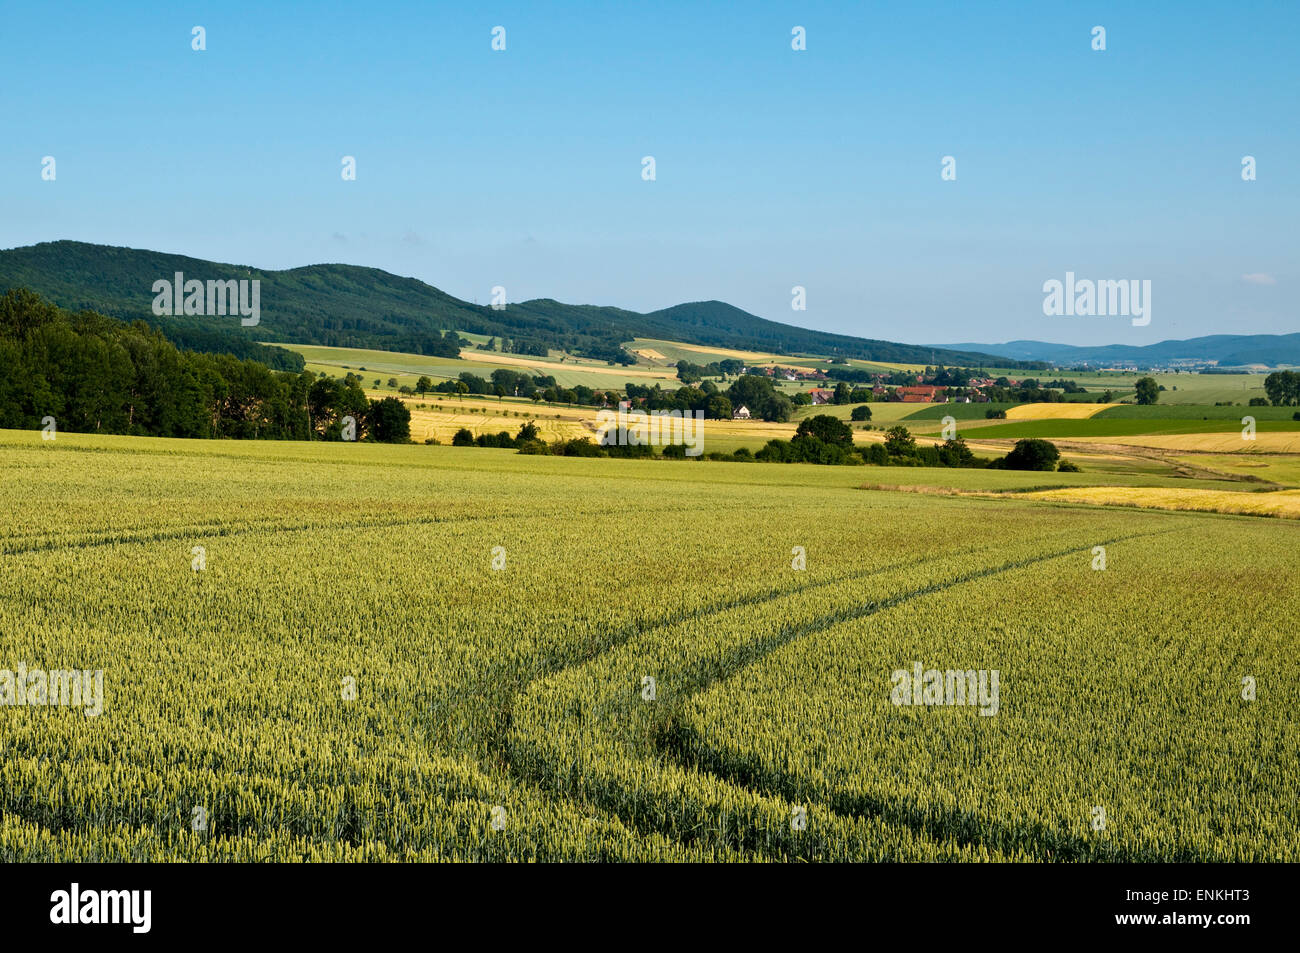 Landscape with fields and hills, Weserbergland, Lower Saxony, Germany - Stock Image